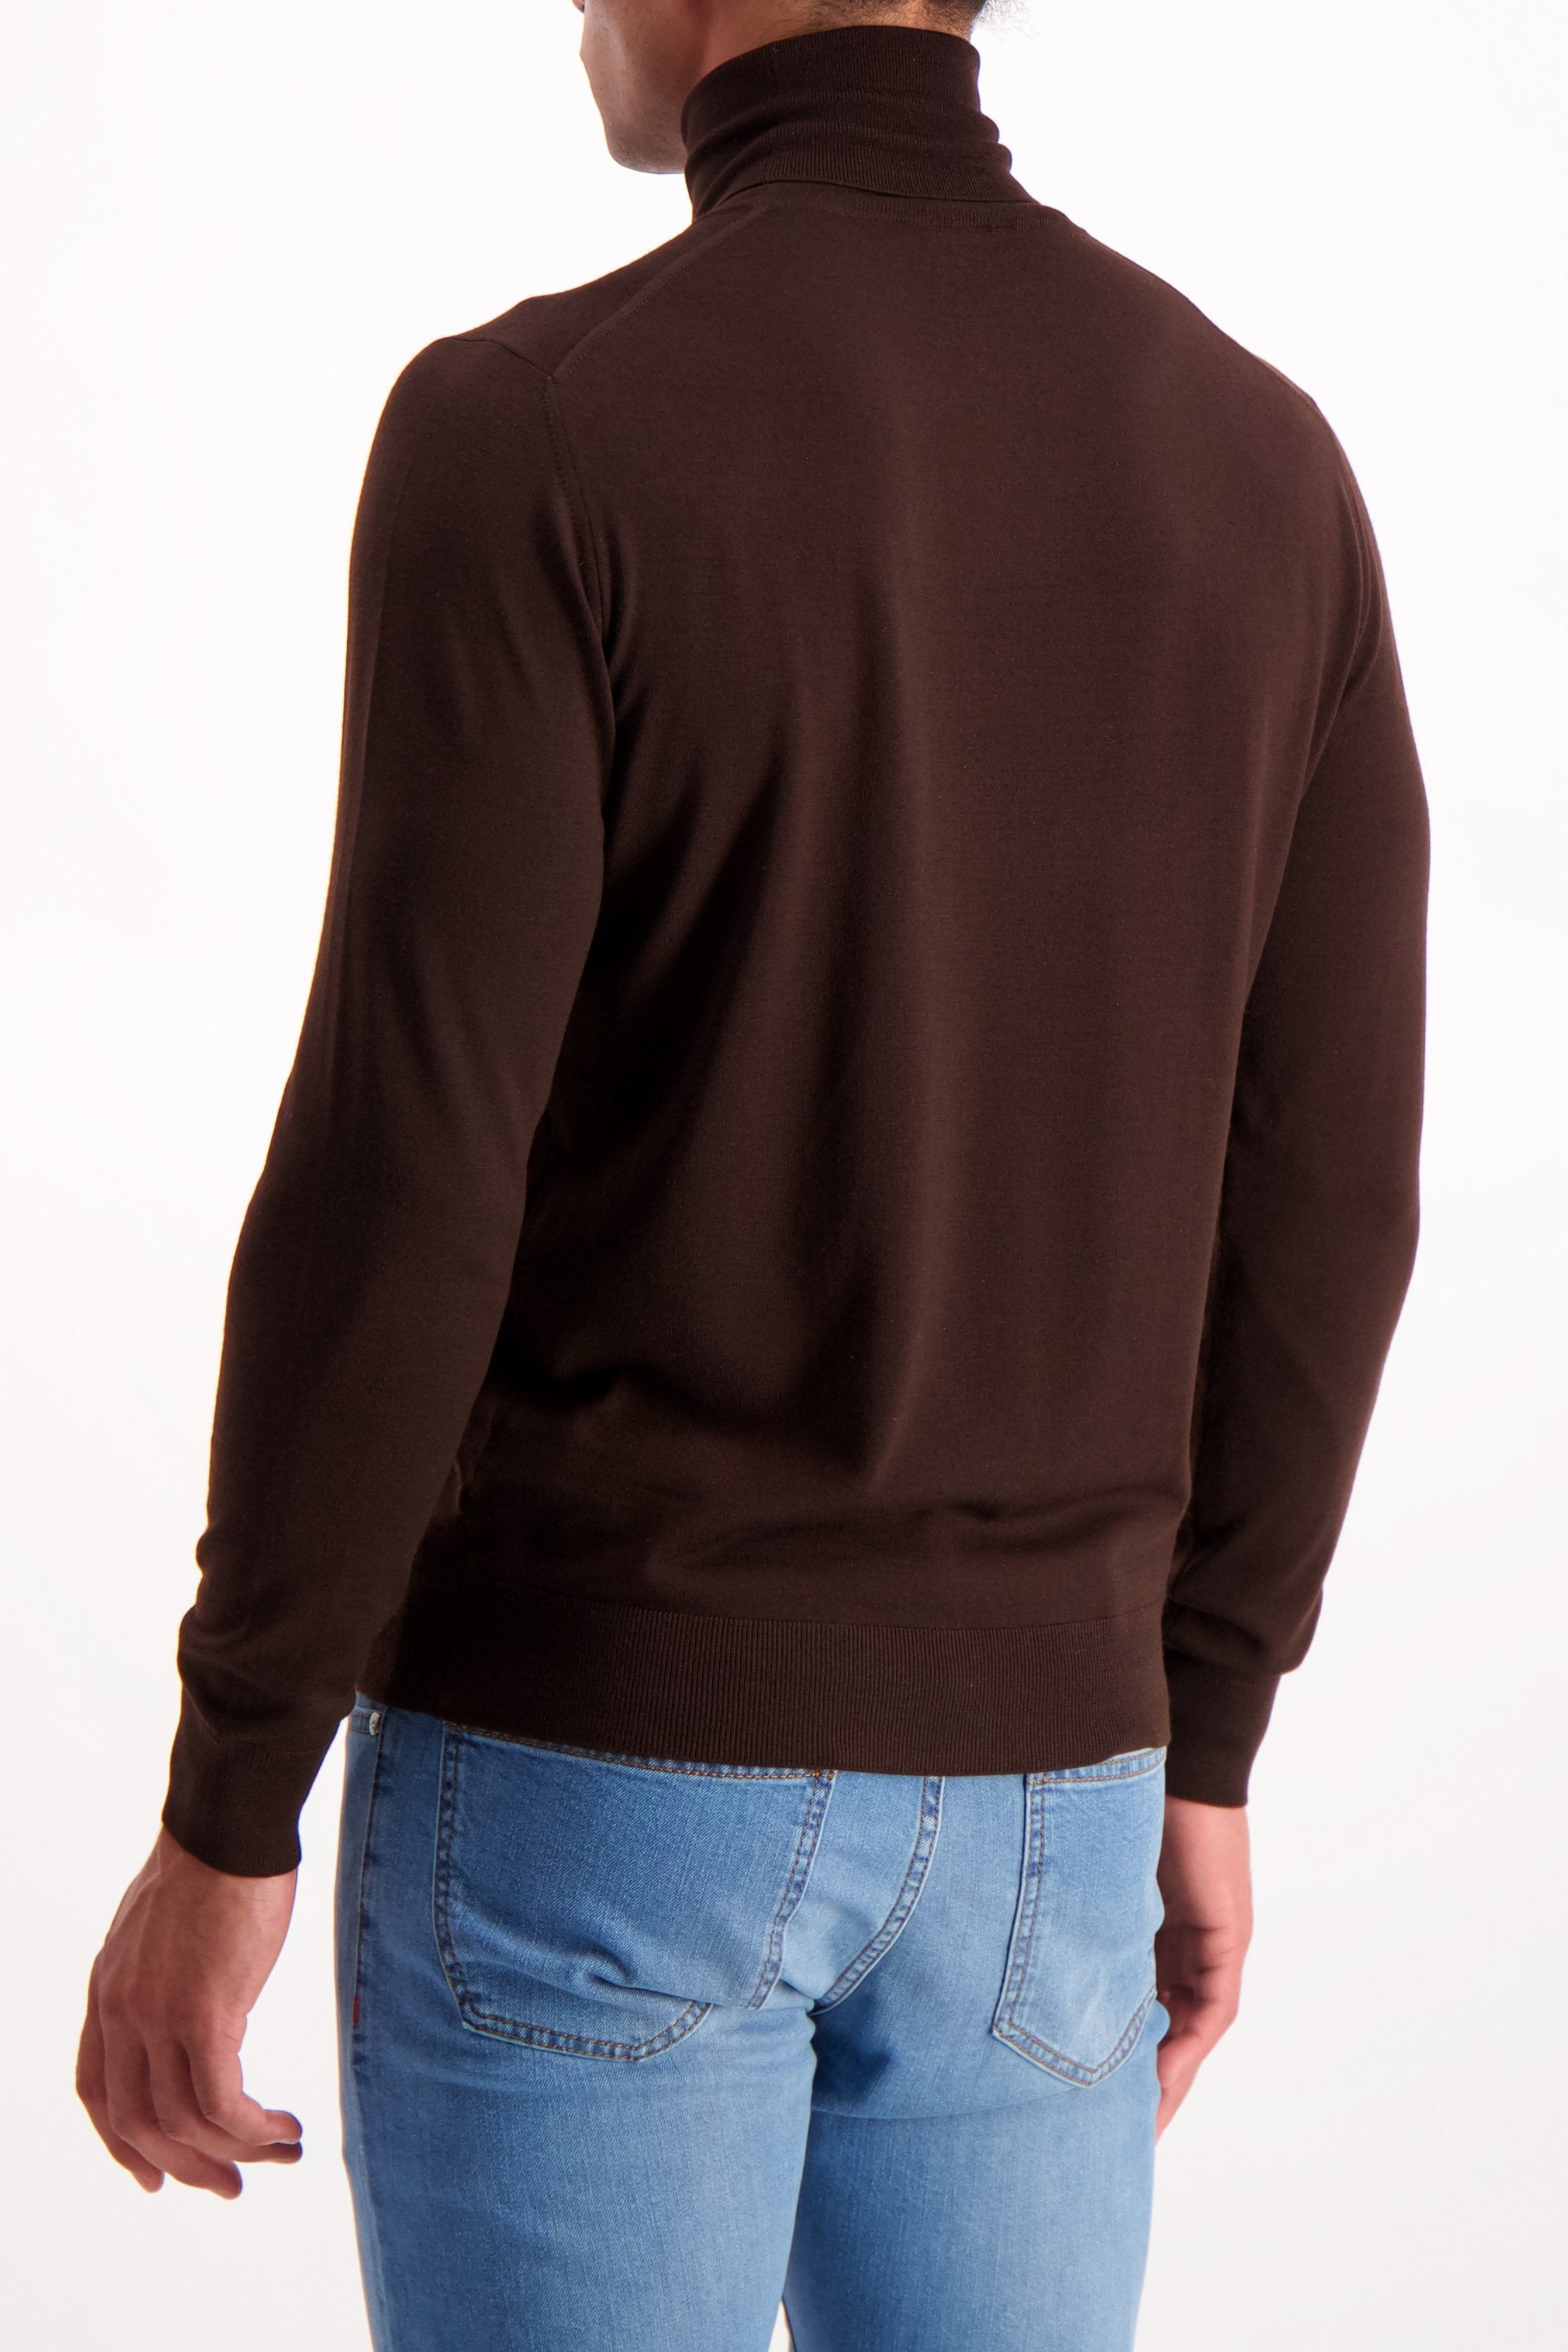 Back Crop Image Of Model Wearing Isaia Brown Turtleneck Sweater